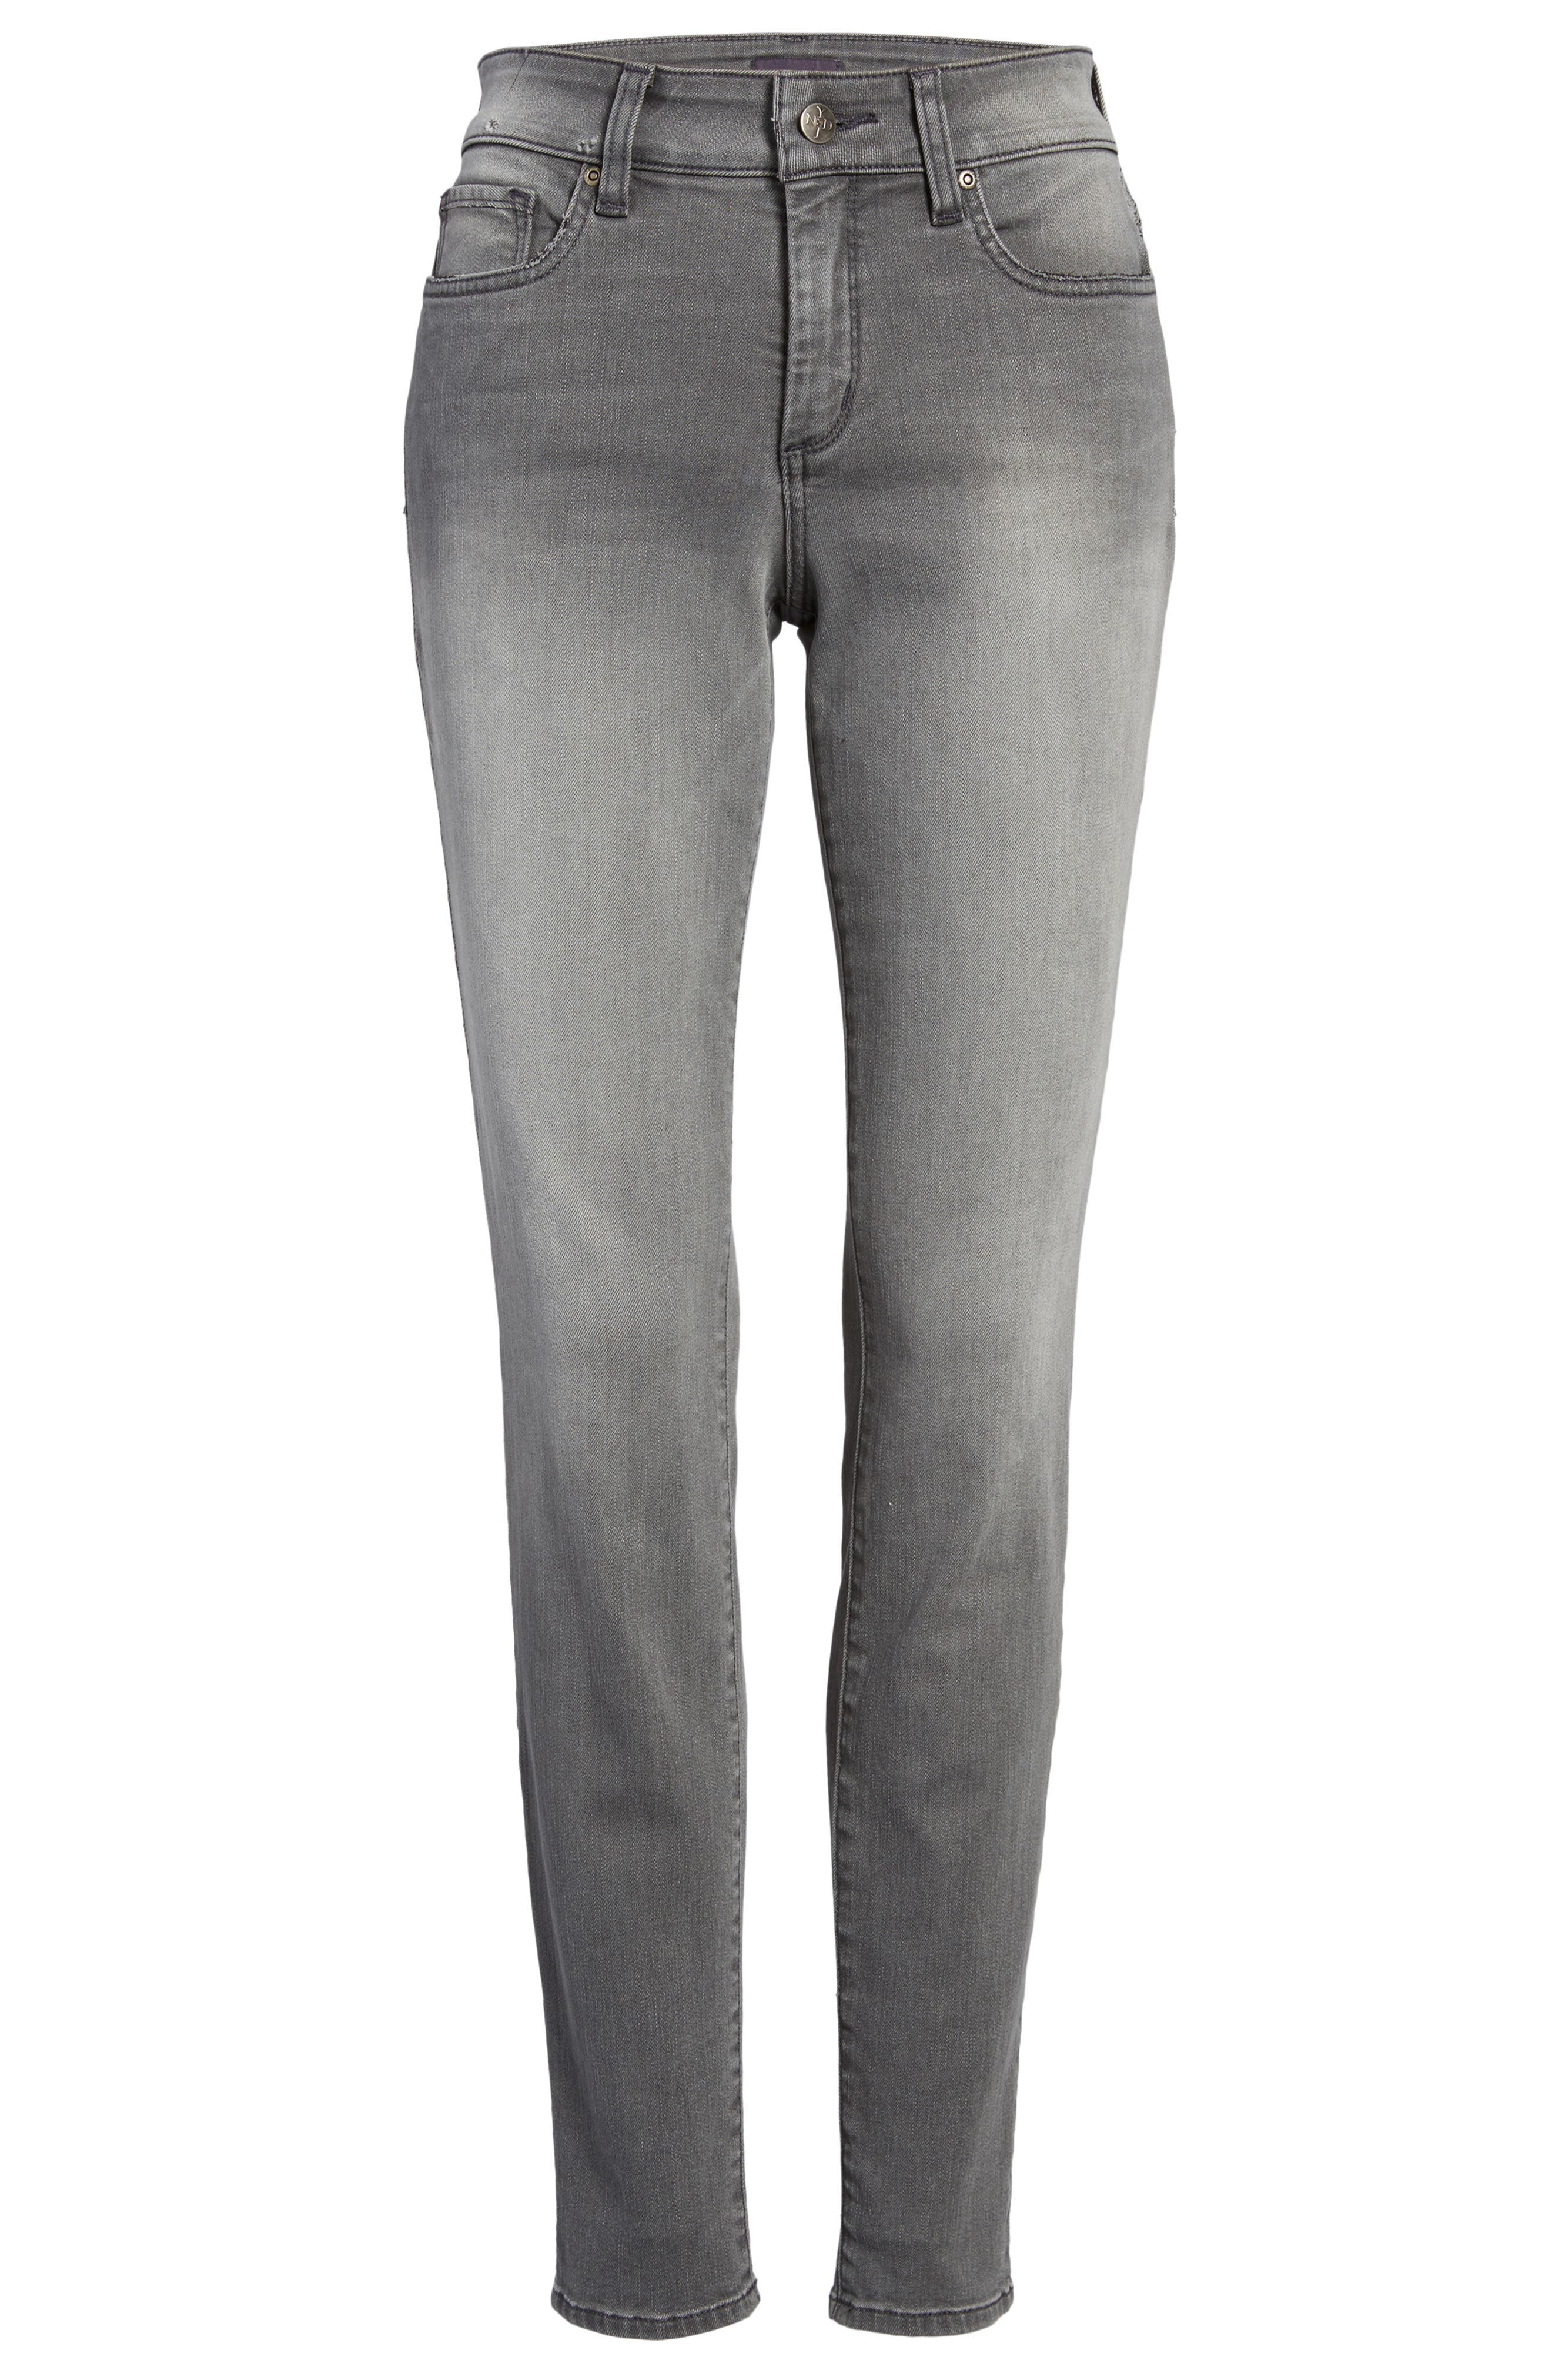 Ami Stretch Skinny Jeans,                             Alternate thumbnail 6, color,                             035